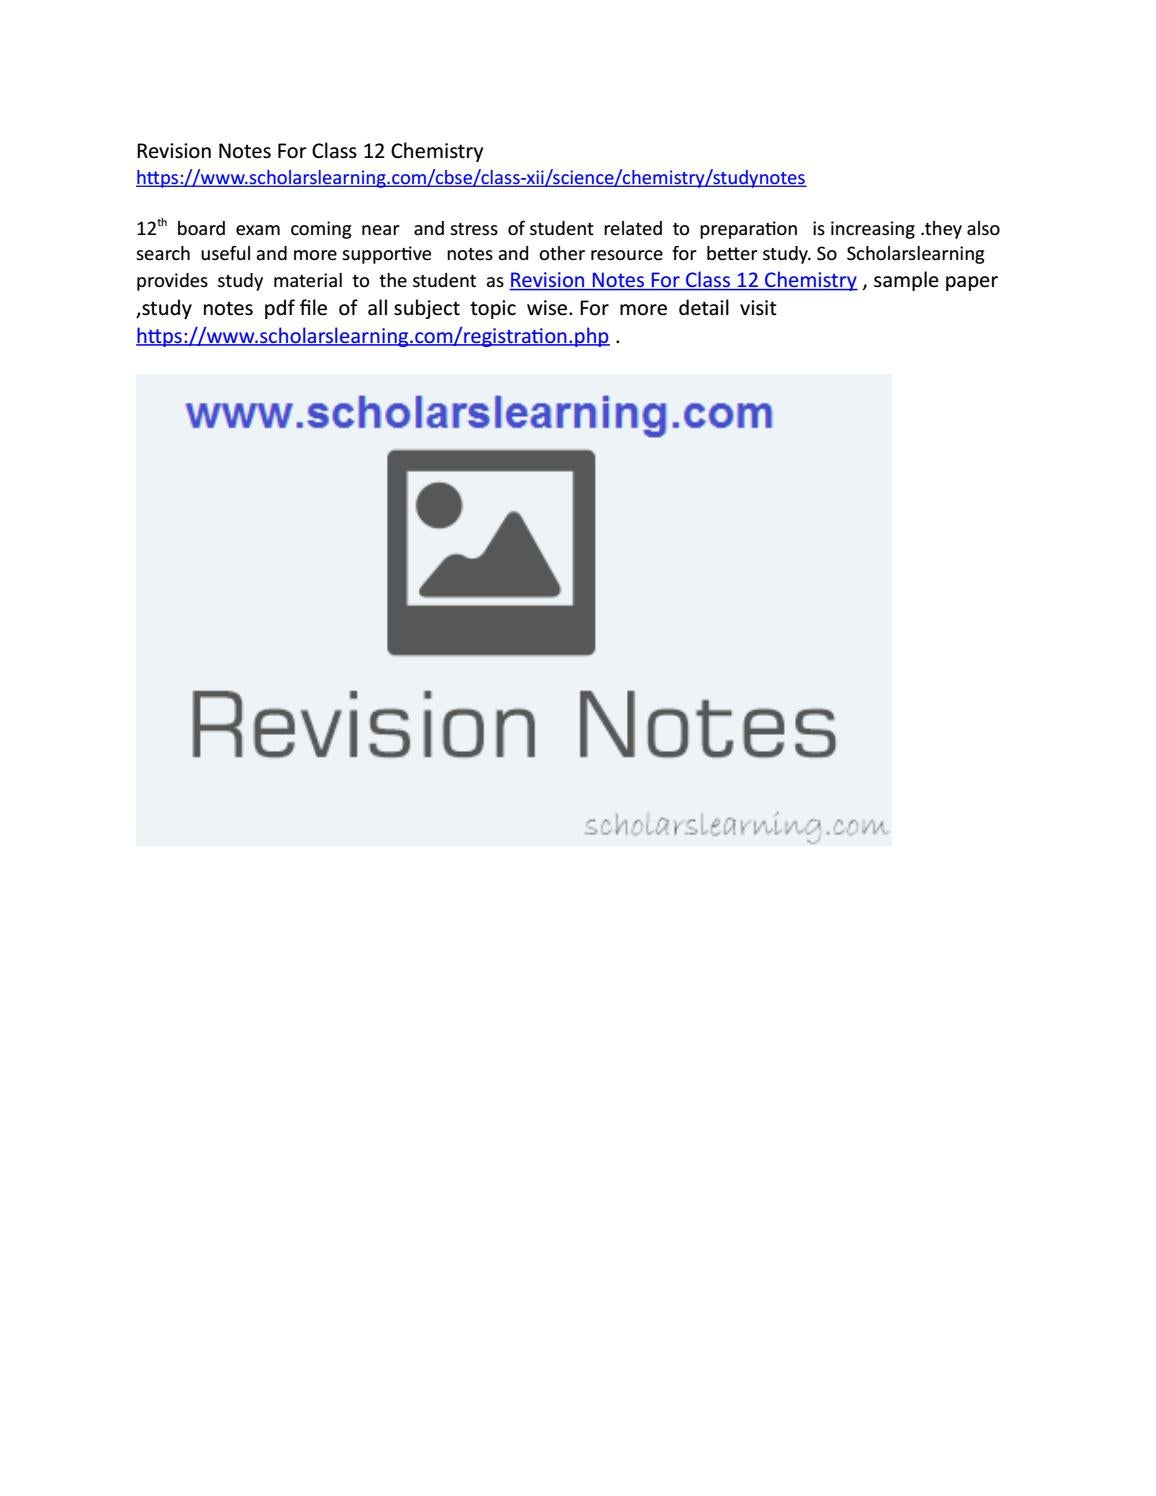 Revision notes for class 12 chemistry by Scholars Learning